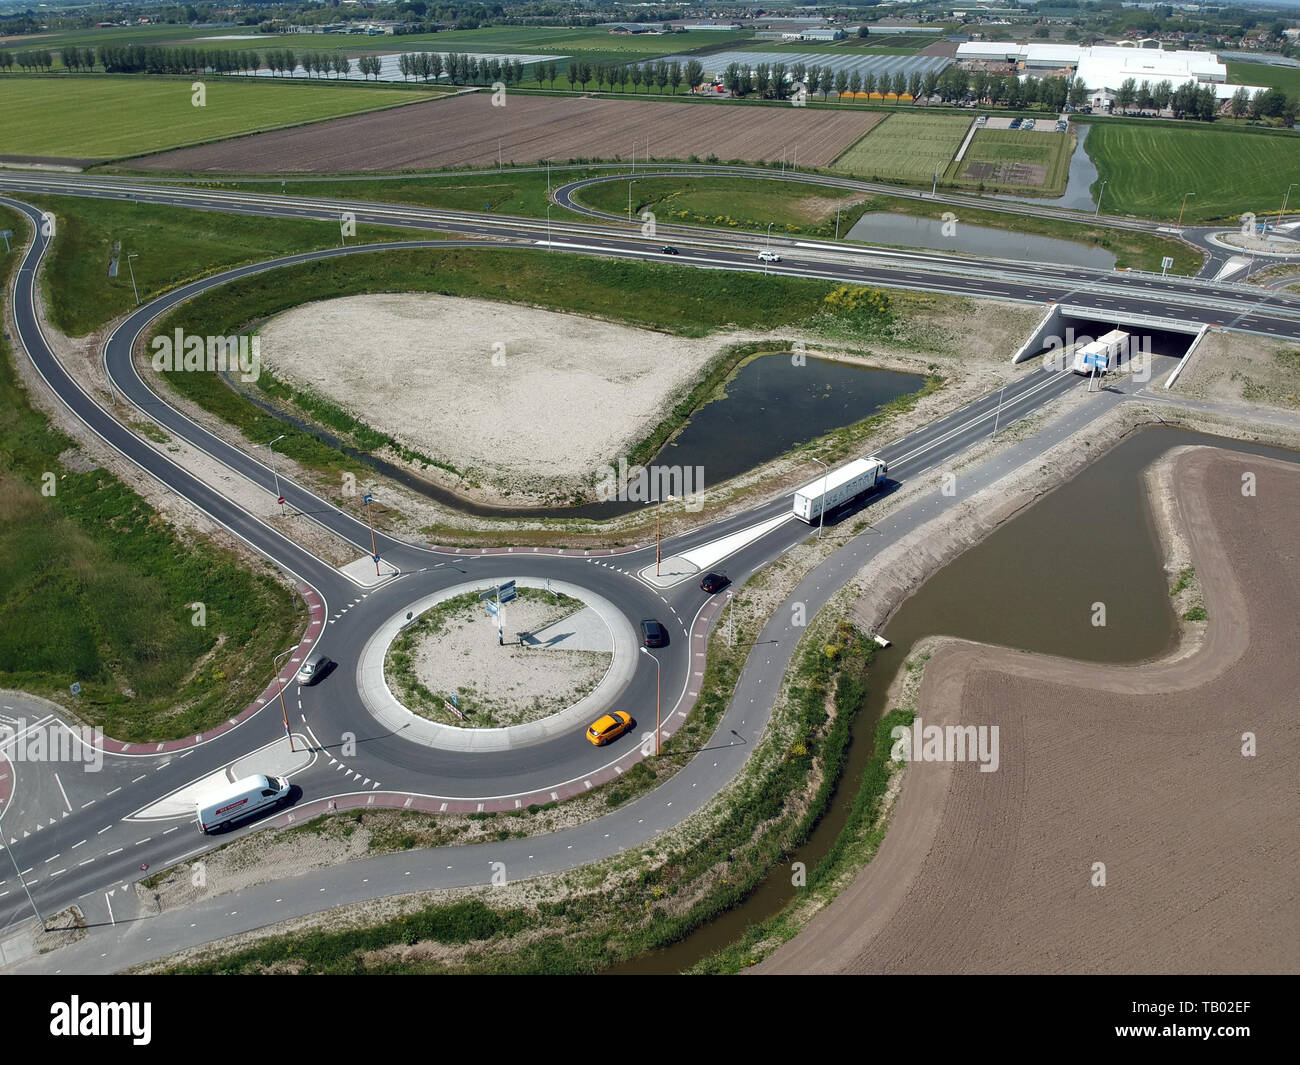 GROOTEBROEK, THE NETHERLANDS -  10 MEI 2019: Drone aerial photo of a traffic circle with on and off roads for the cars Stock Photo